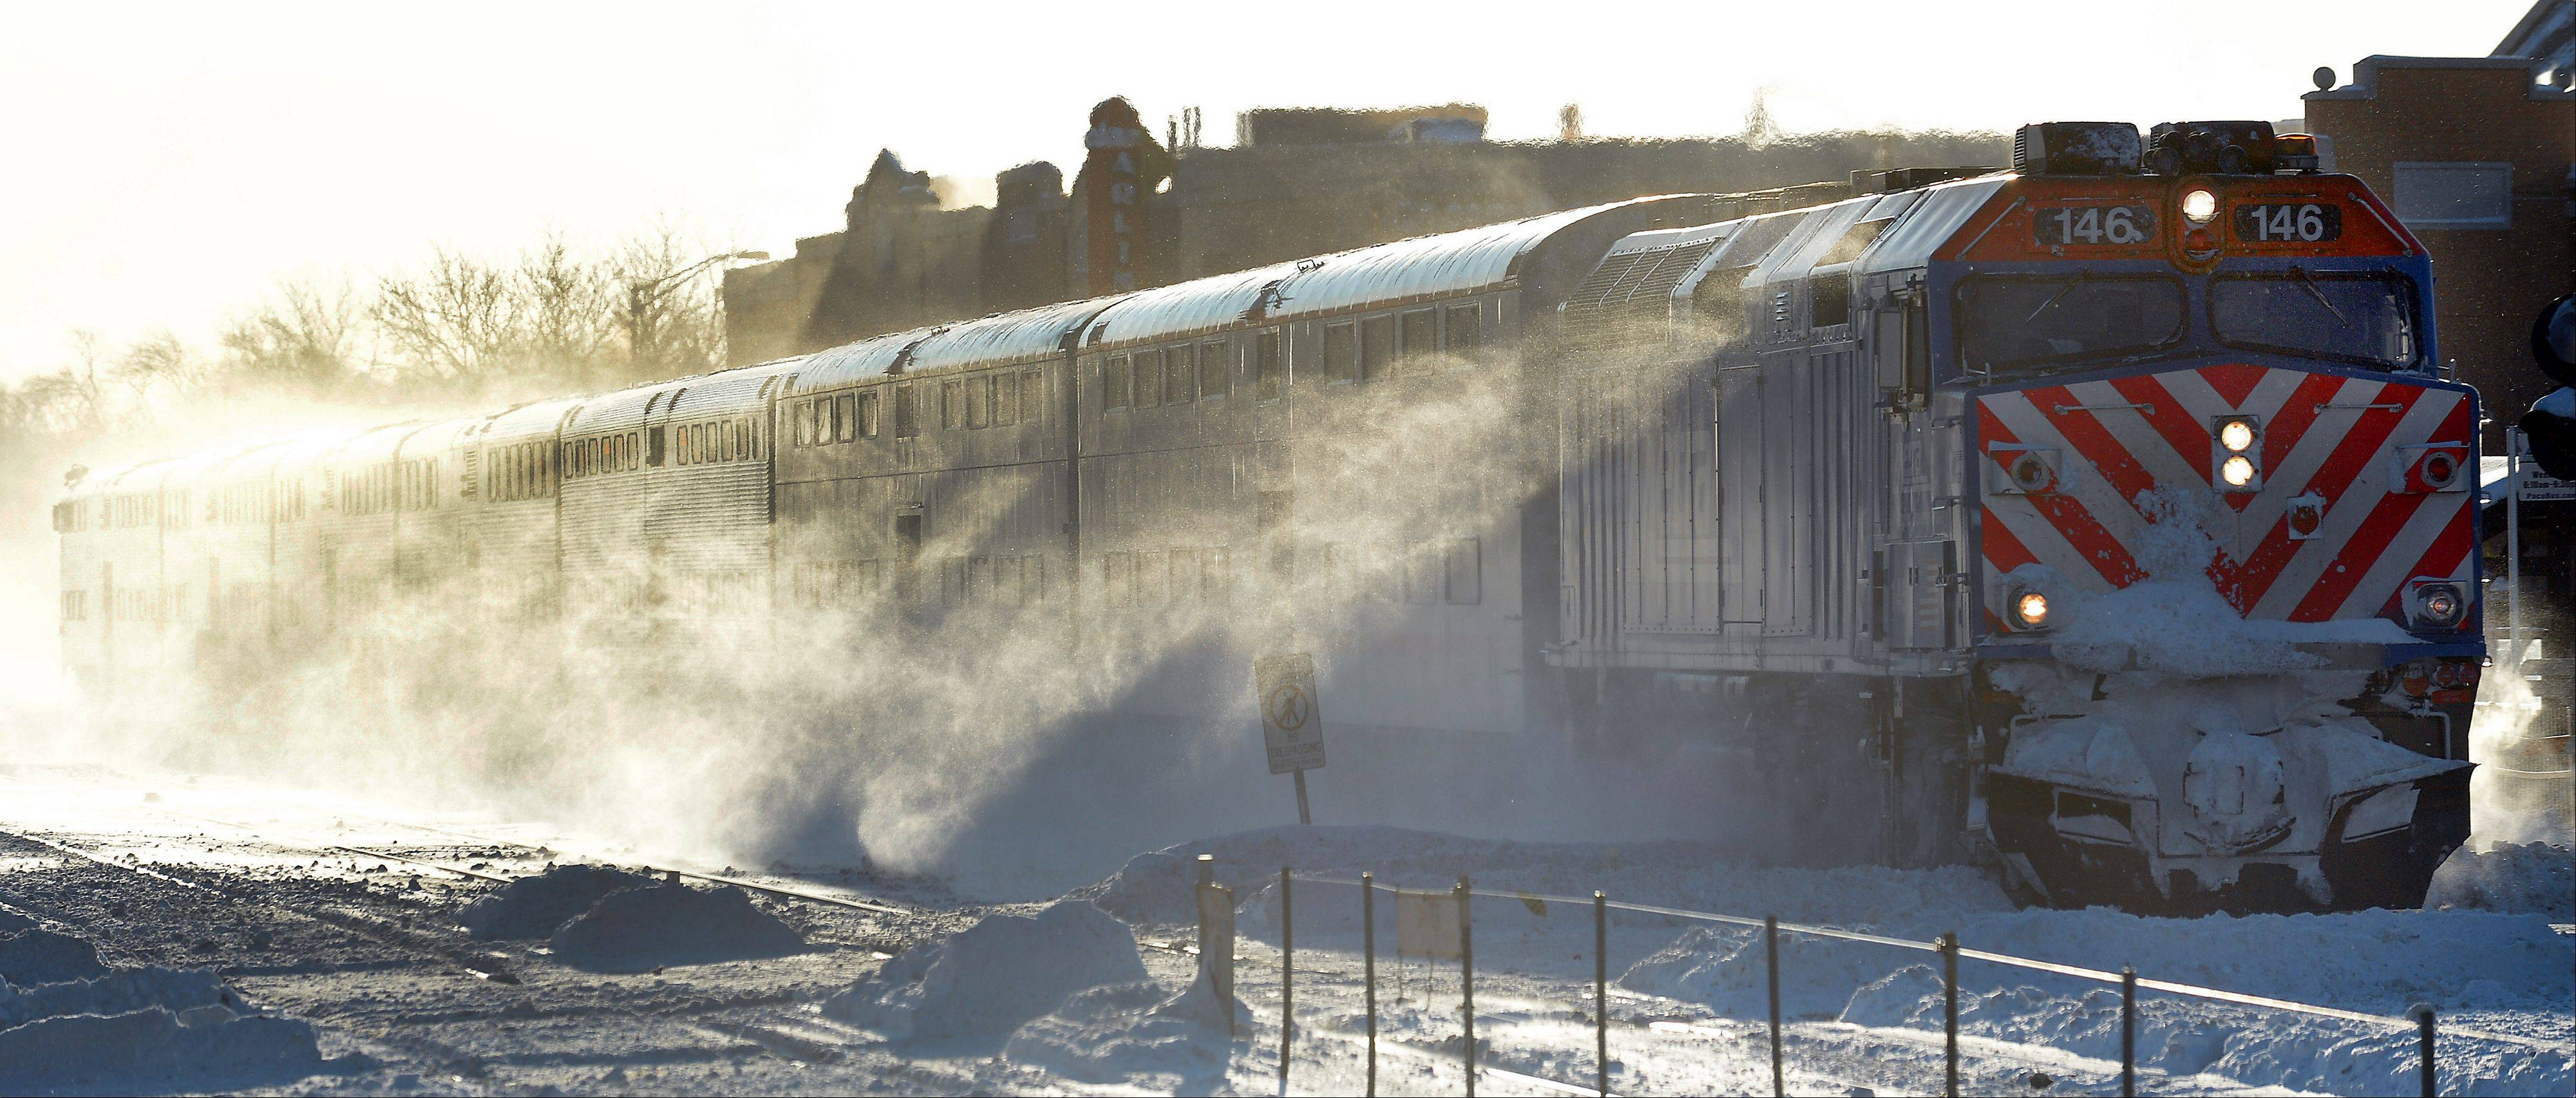 A Metra train plows its way through the blowing snow as it zips on by the Arlington Heights train station in subfreezing temperatures on Monday morning. Many suburban companies allowed employees to work from home Monday.